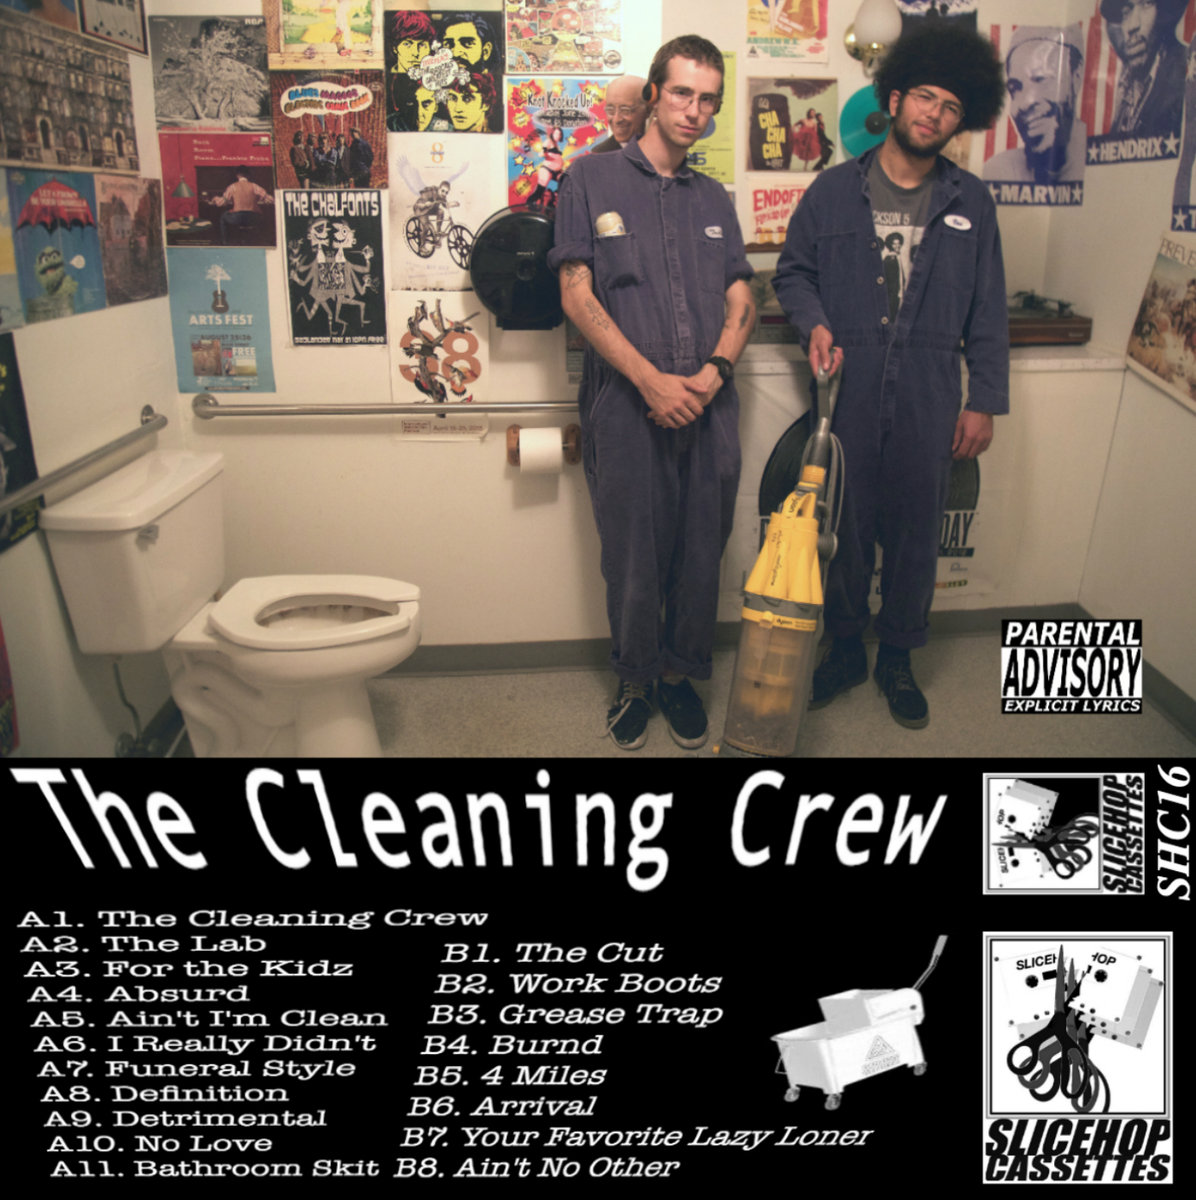 The Cleaning Crew,The Cleaning Crew - For a cleaning crew, these tracks sure are filthy. One of the hottest collaborations to hit Missoula, this project was grounds for a friendship between movers and shakers in Missoula hip hop. Think Truk and s_nya get into the nitty gritty with some of their most polished music yet.